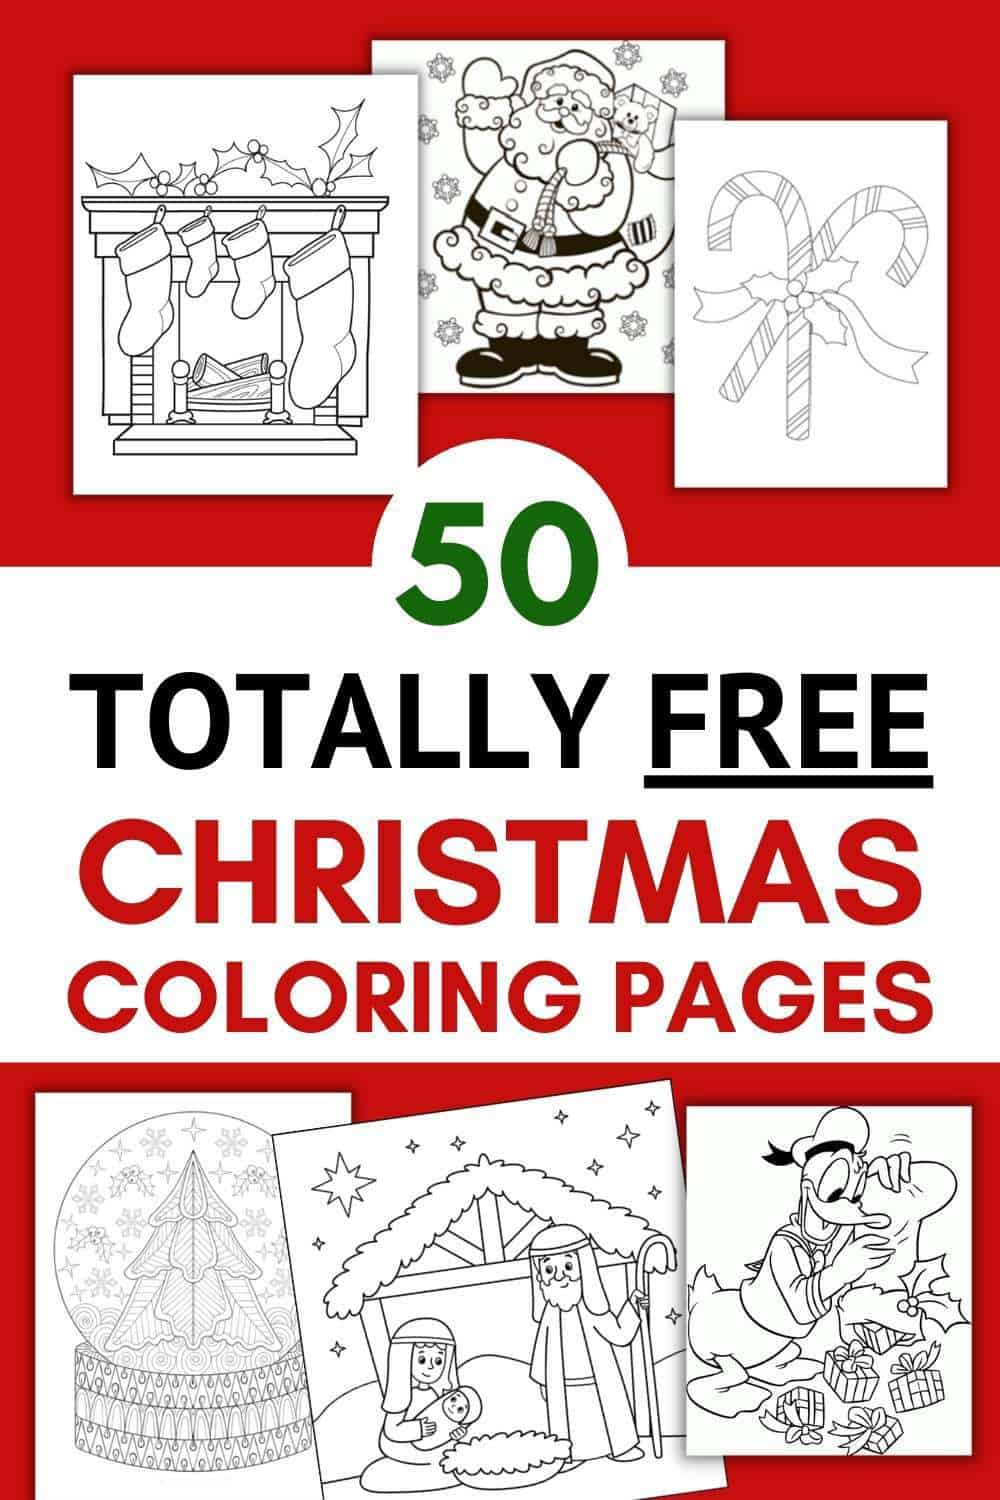 55 Free Christmas Coloring Pages Printables 2021 Sofestive Com